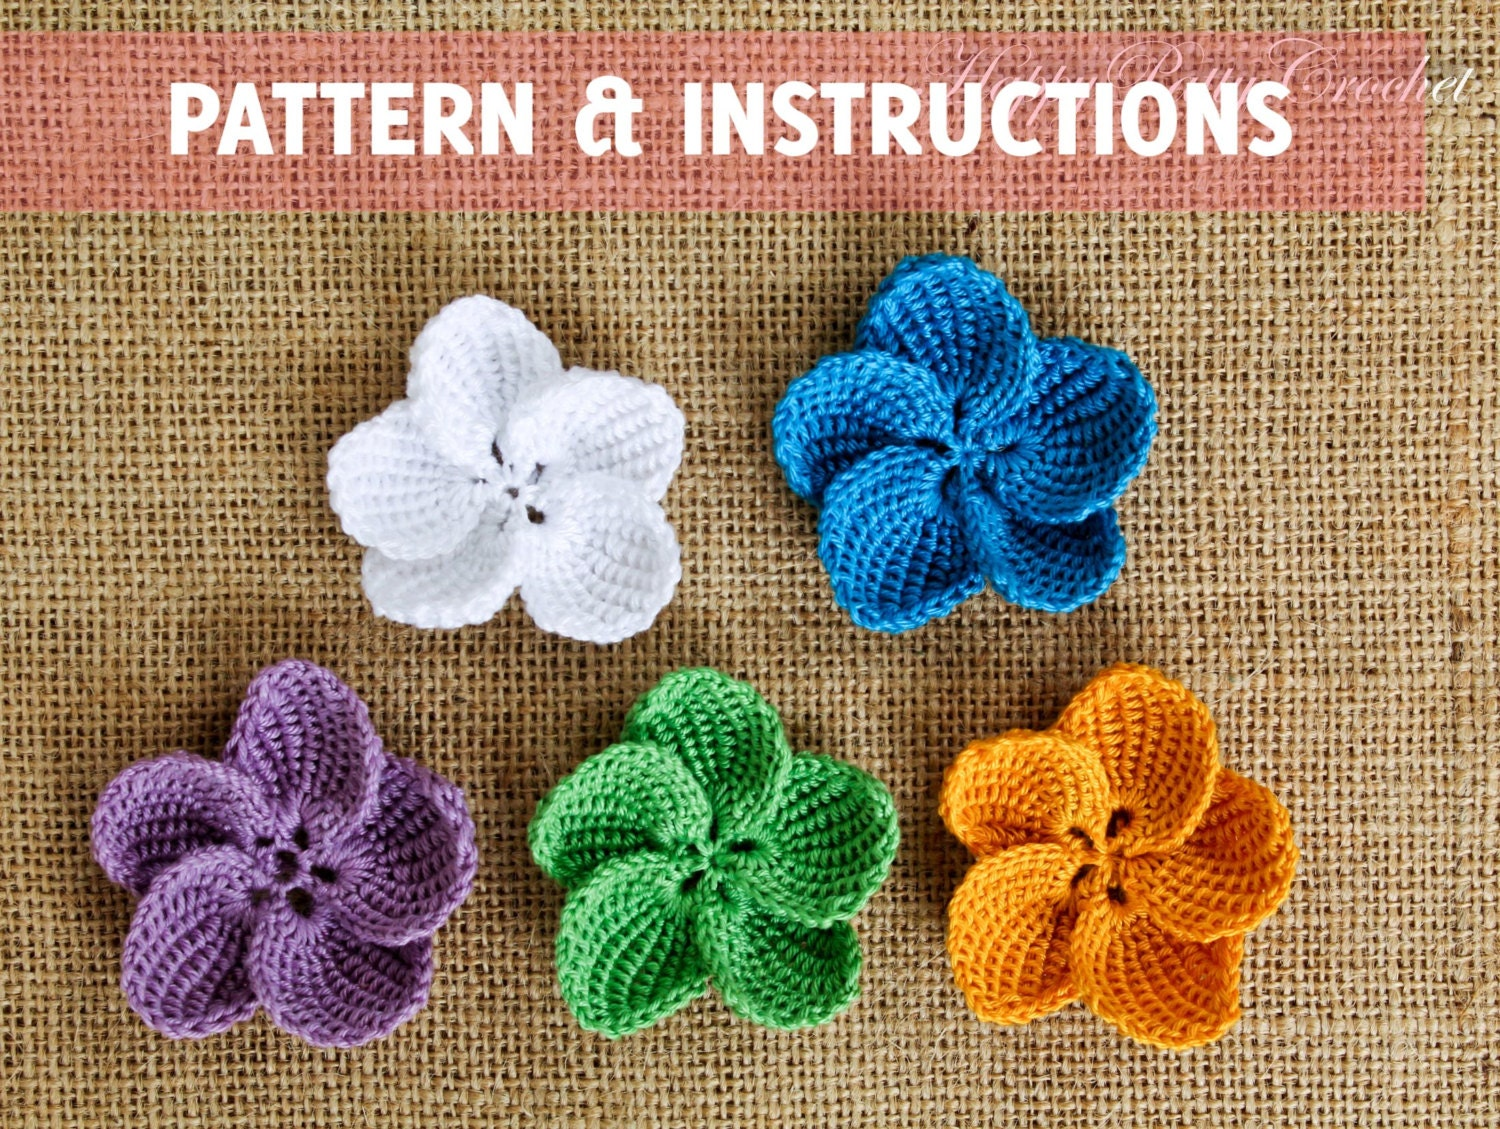 Crochet plumeria pattern and instructions crochet flower zoom bankloansurffo Images